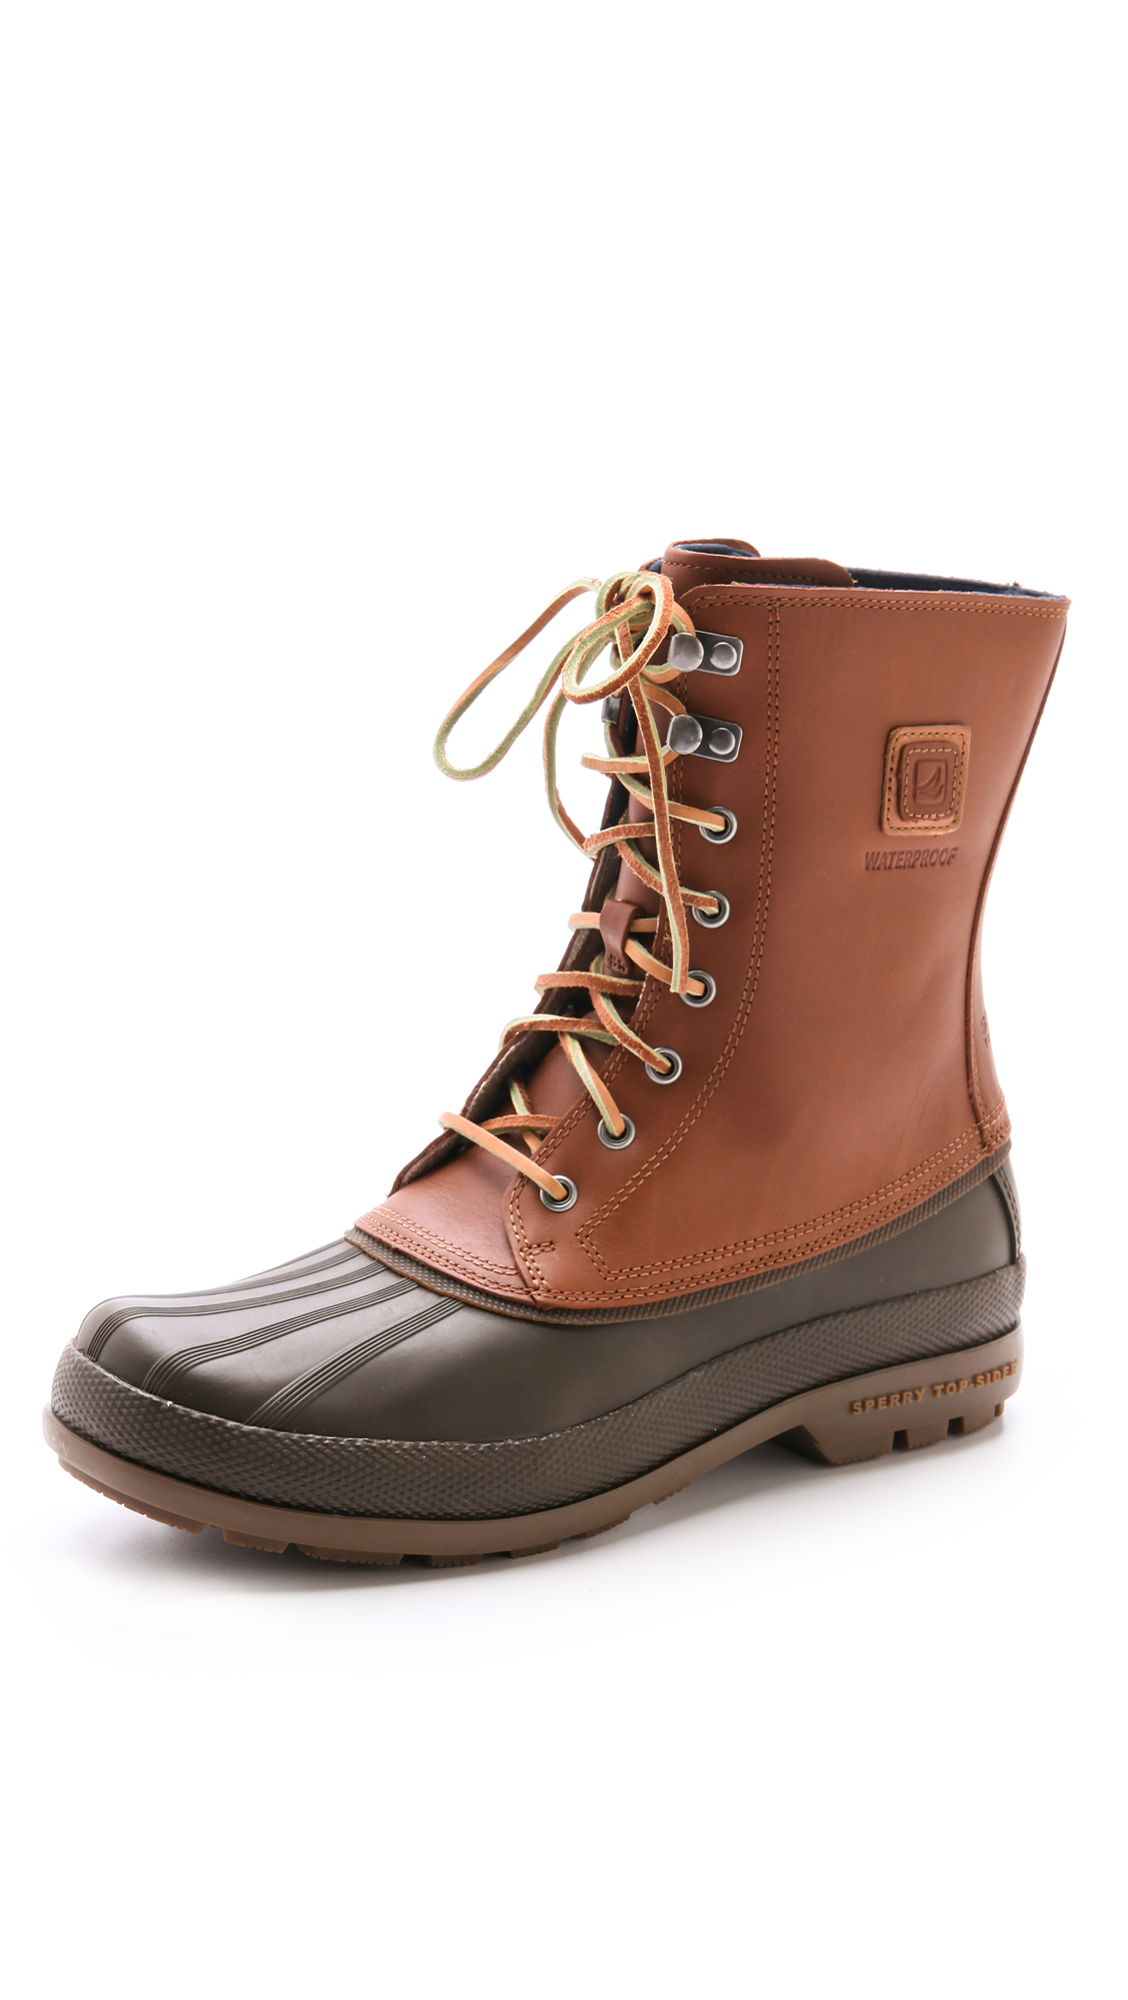 sperry top sider cold bay boots in brown for